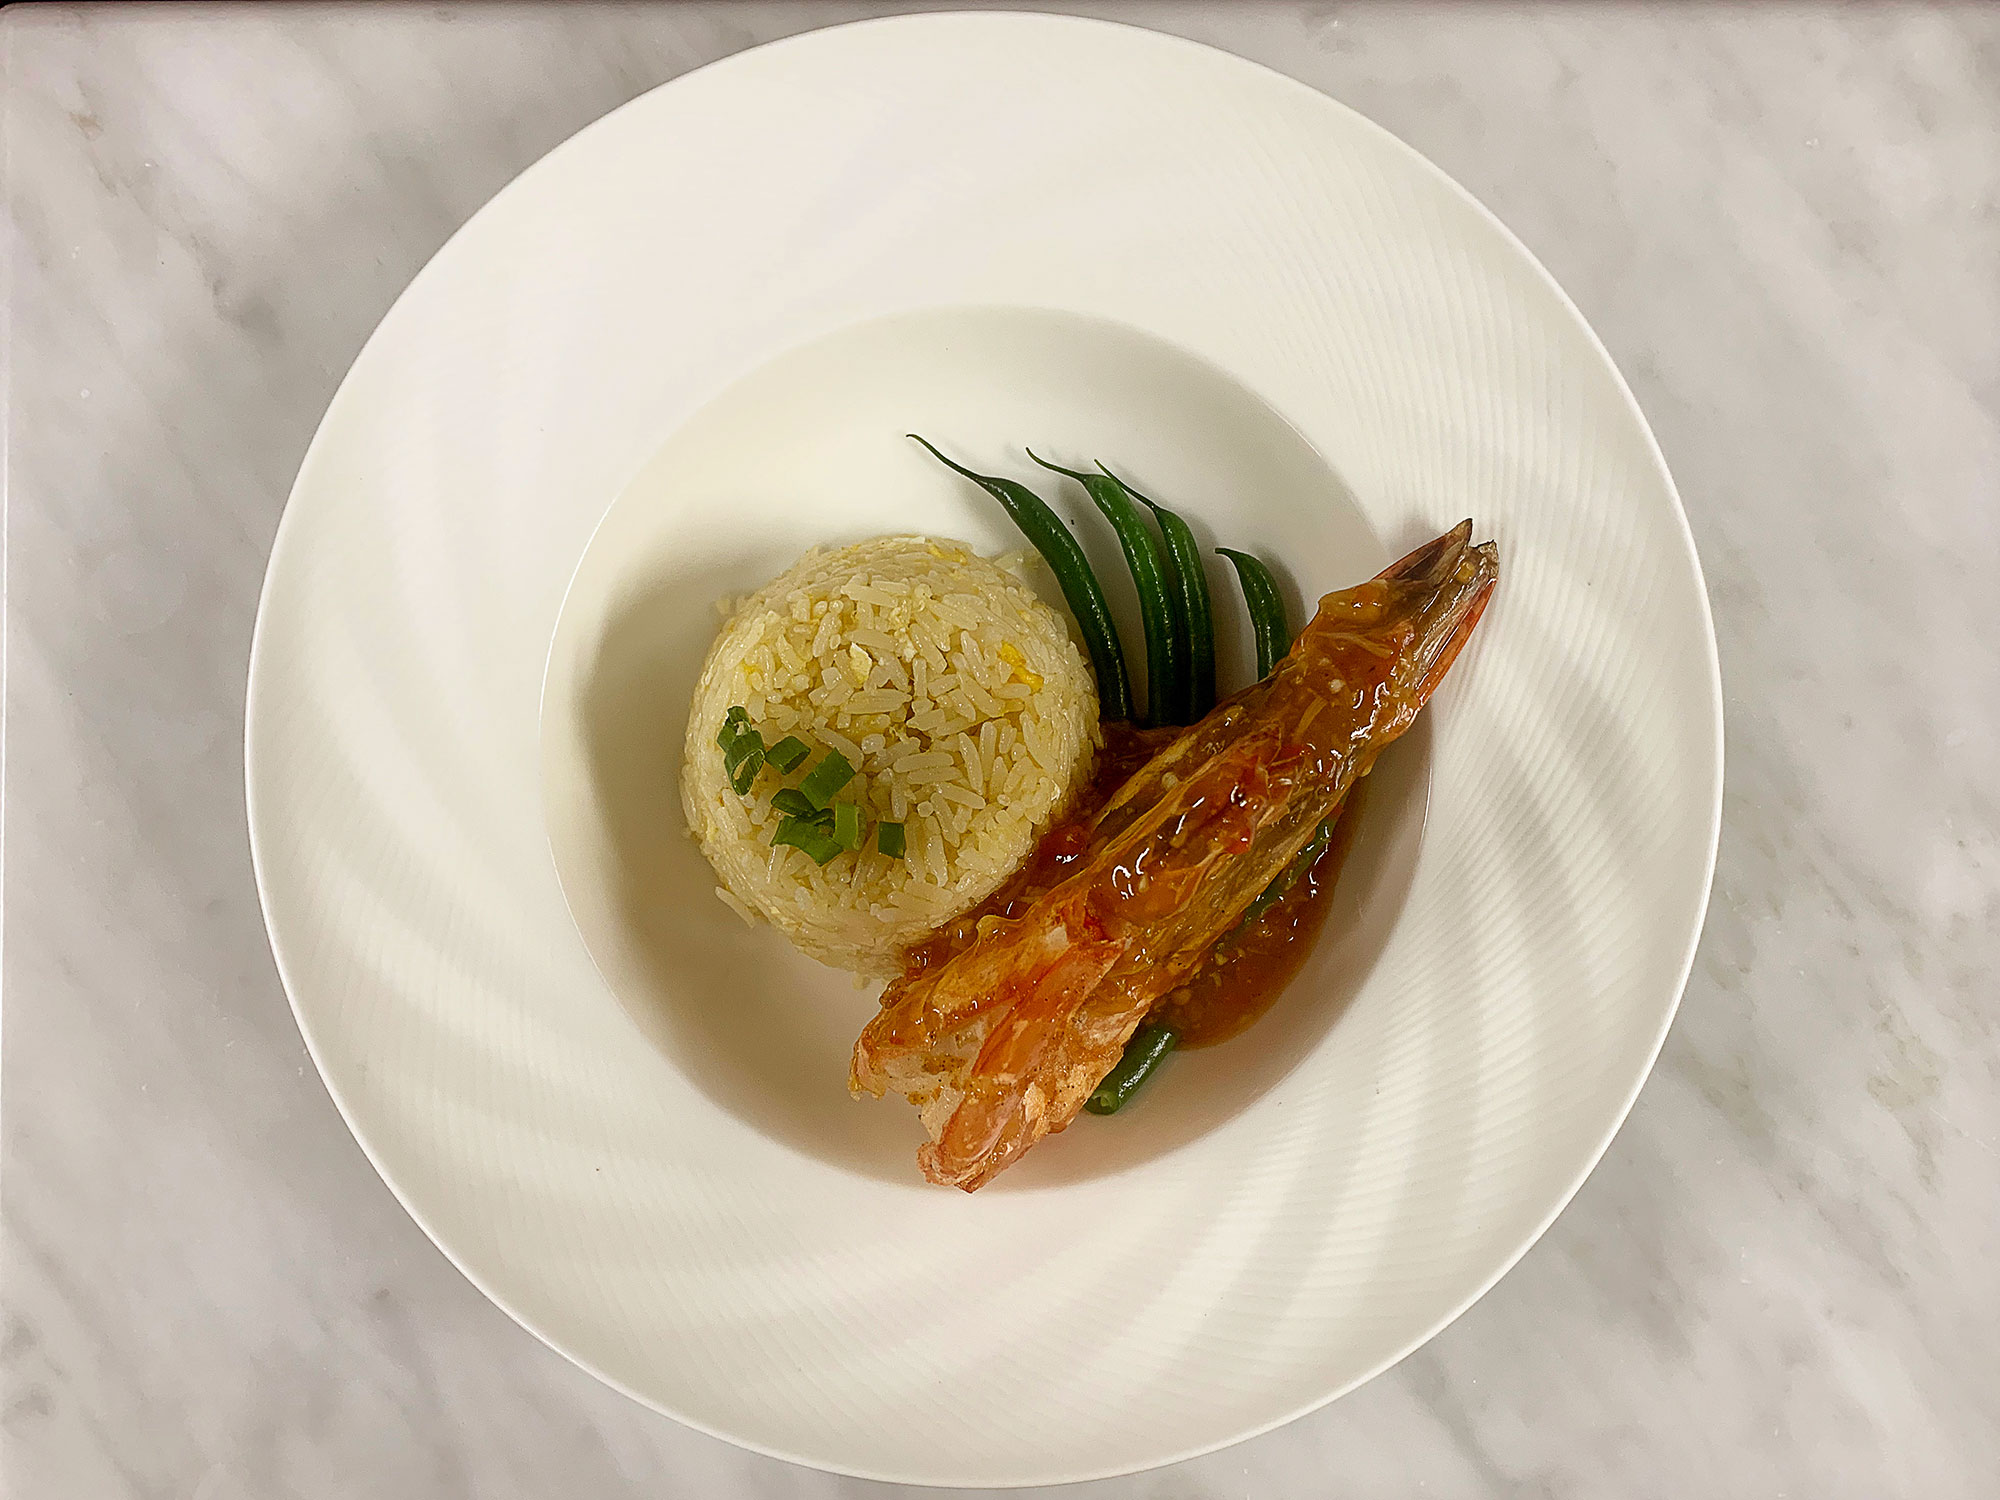 Egg-Fried-Rice-accompanied-with-Pan-fried-King-Prawn-in-Spicy-Sauce